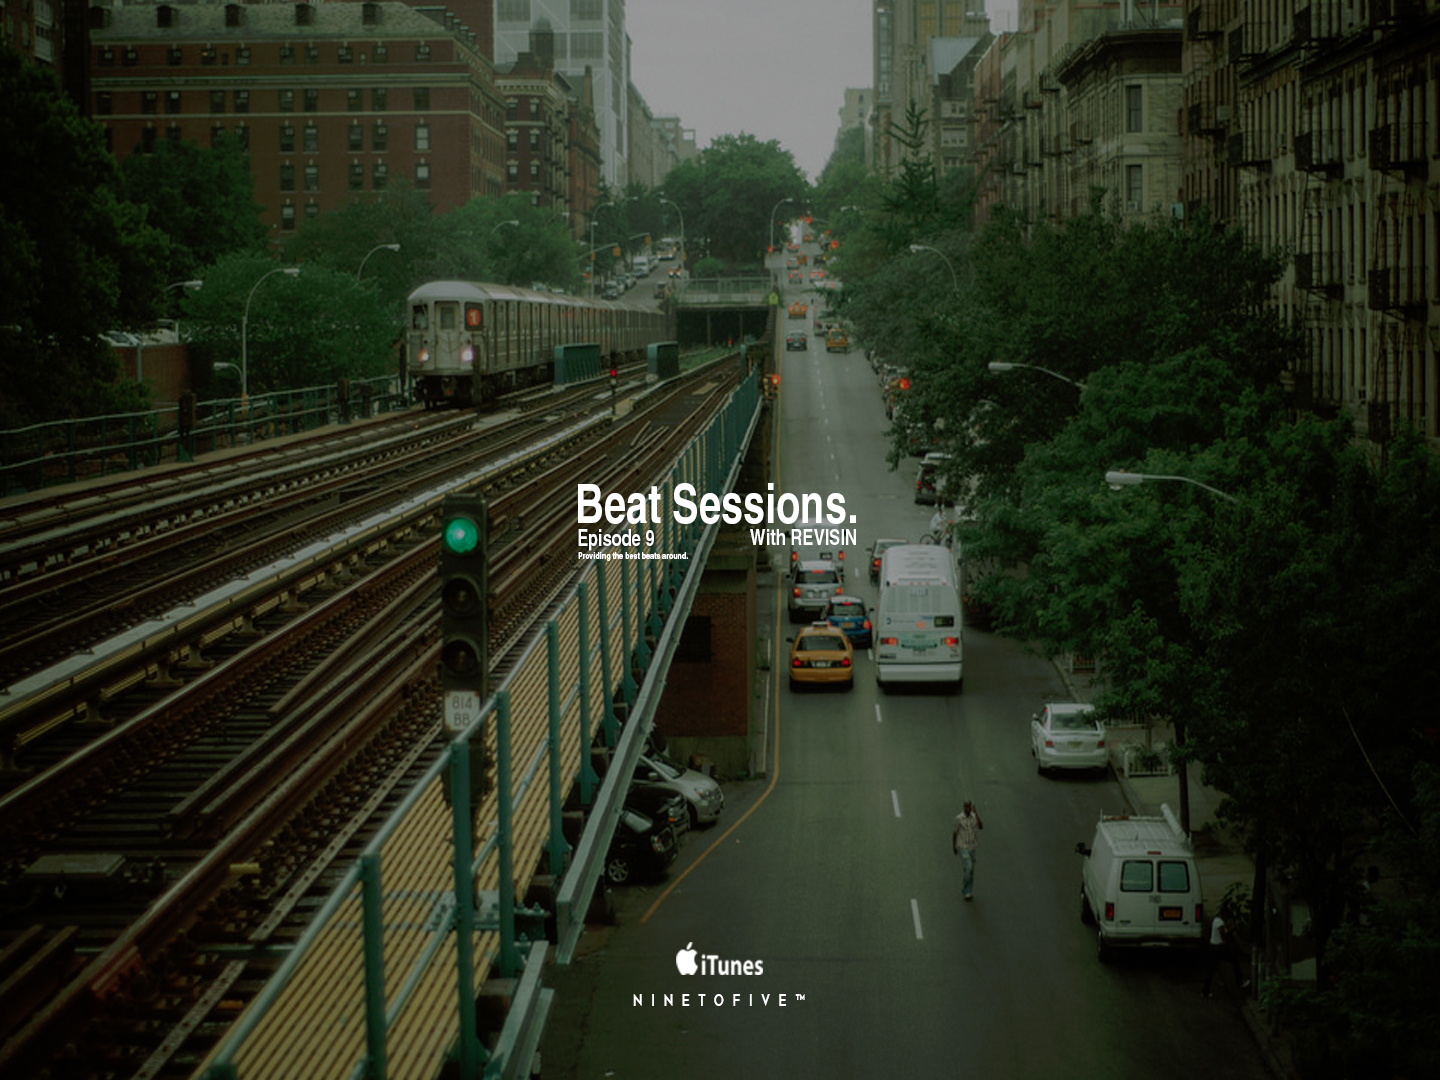 Beat Sessions - Season 2 Episode 9